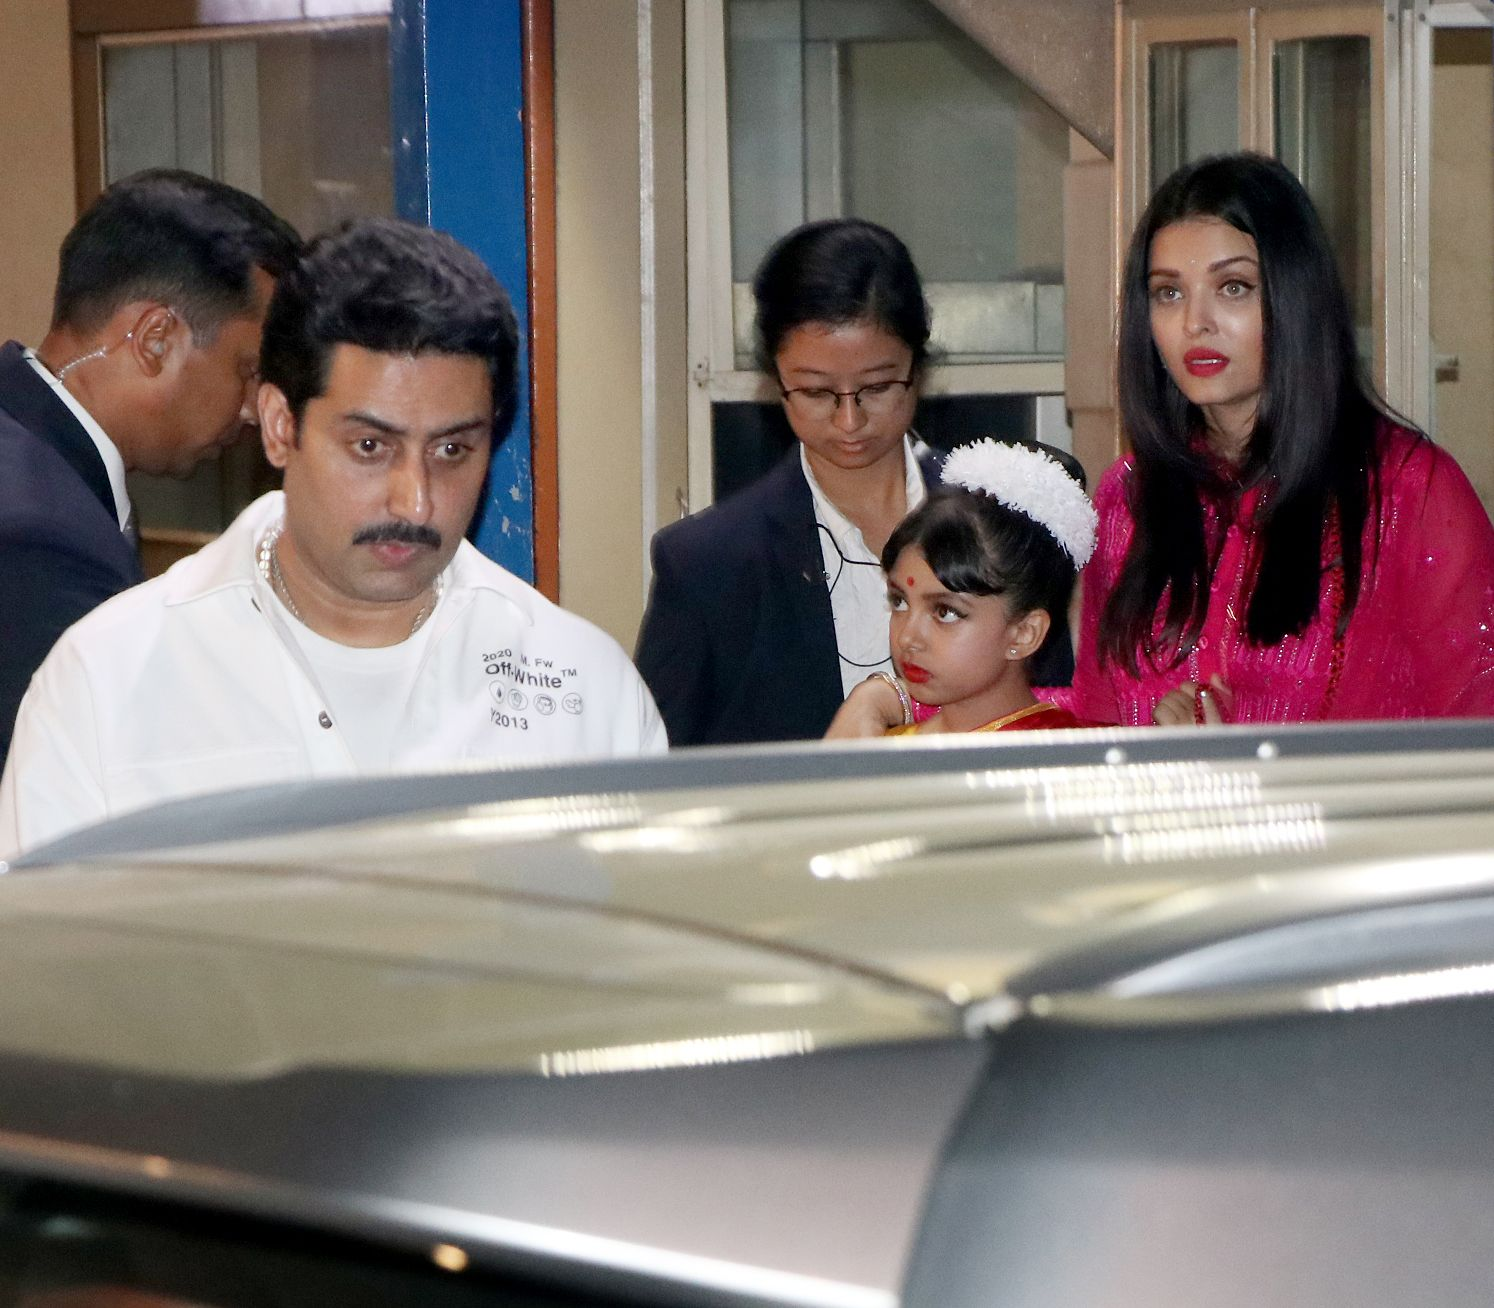 Amitabh Bachchan feels elated on grand daughter Aaradhya's school performance